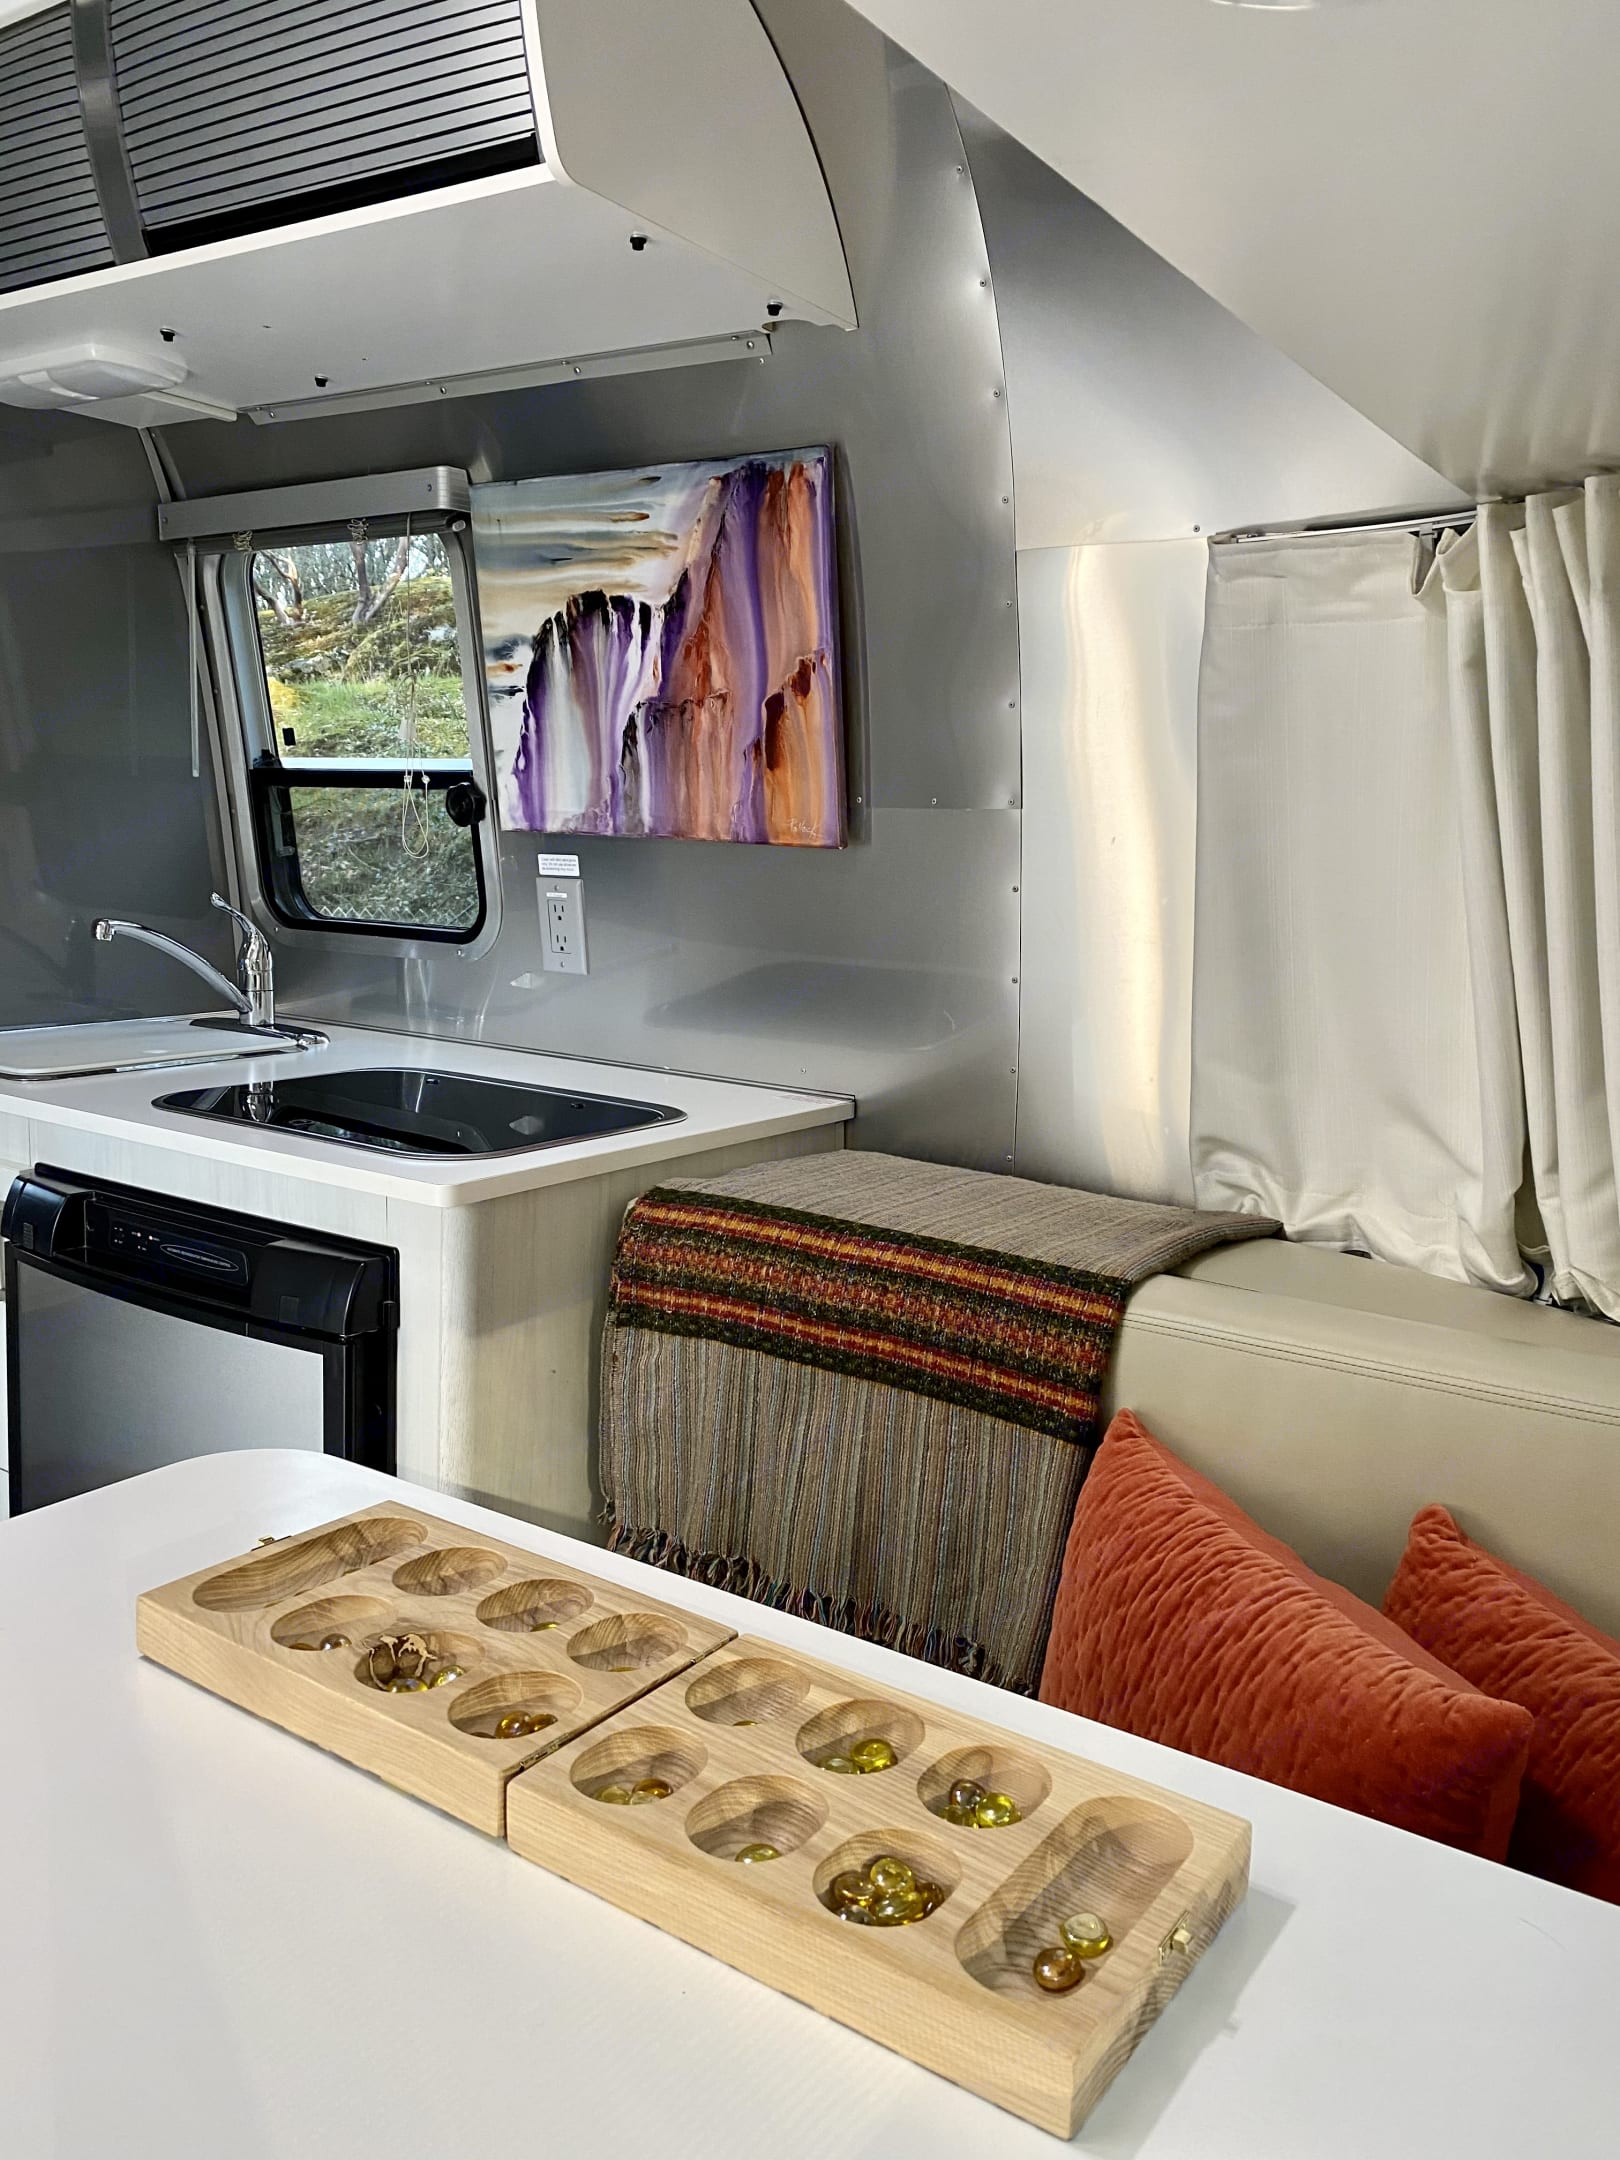 Time to chill in the Airstream after a day of exploring... books, mancala, journaling, scrabble, or maybe planning your next adventure?. Airstream Sport 2016